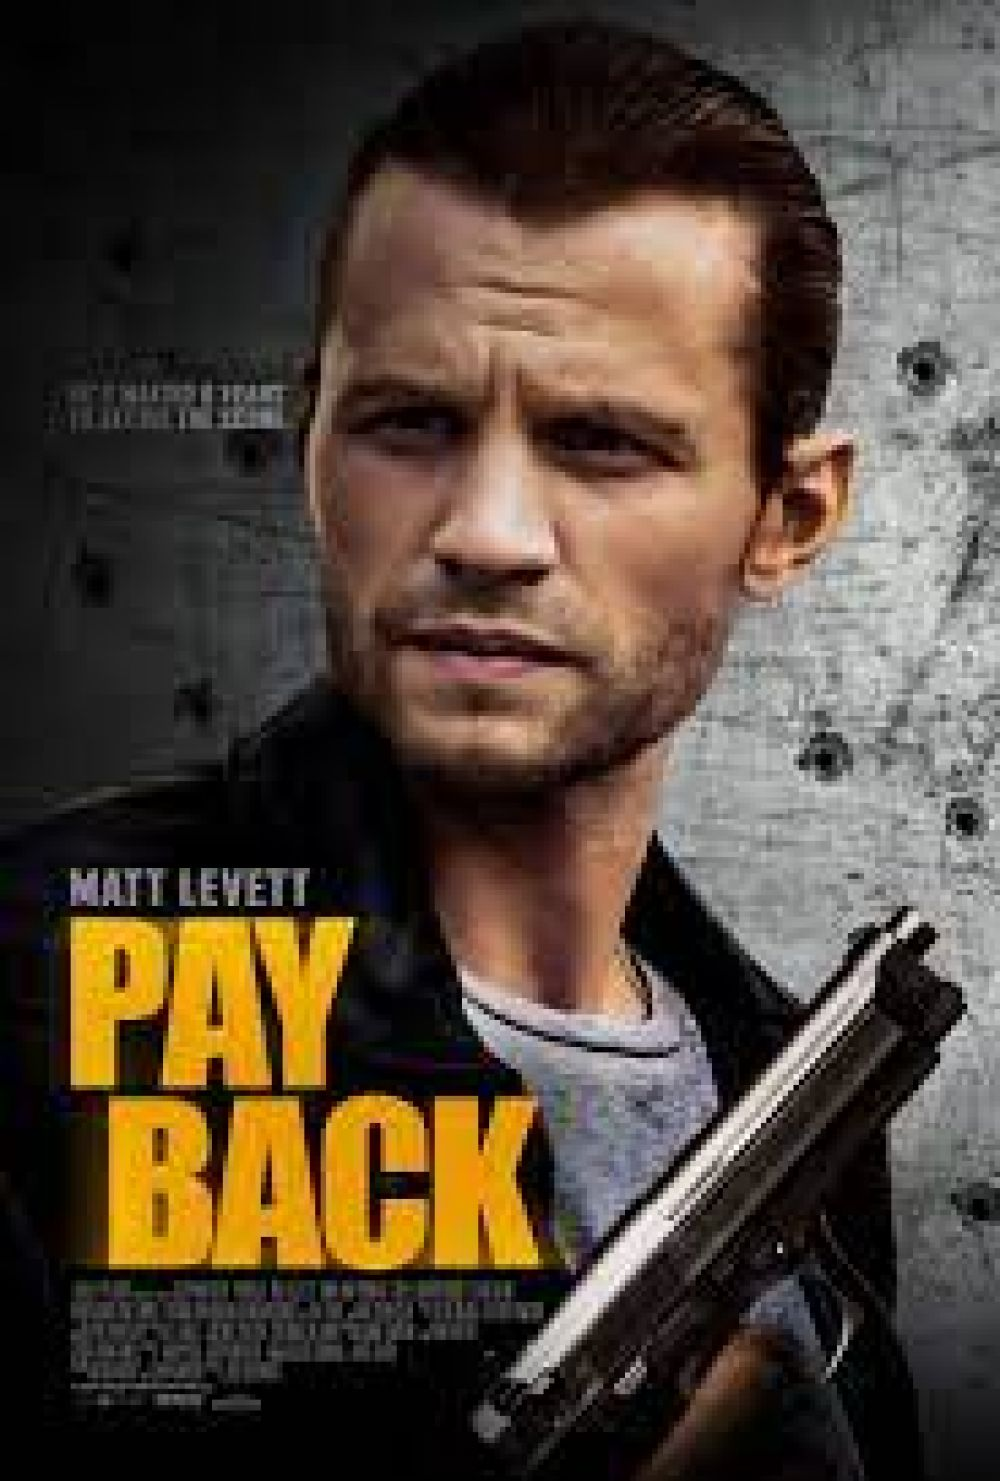 image of https://www.assets.prymix.com/media/images/movies/featured/Paybackprymix.com-1600349650.jpg